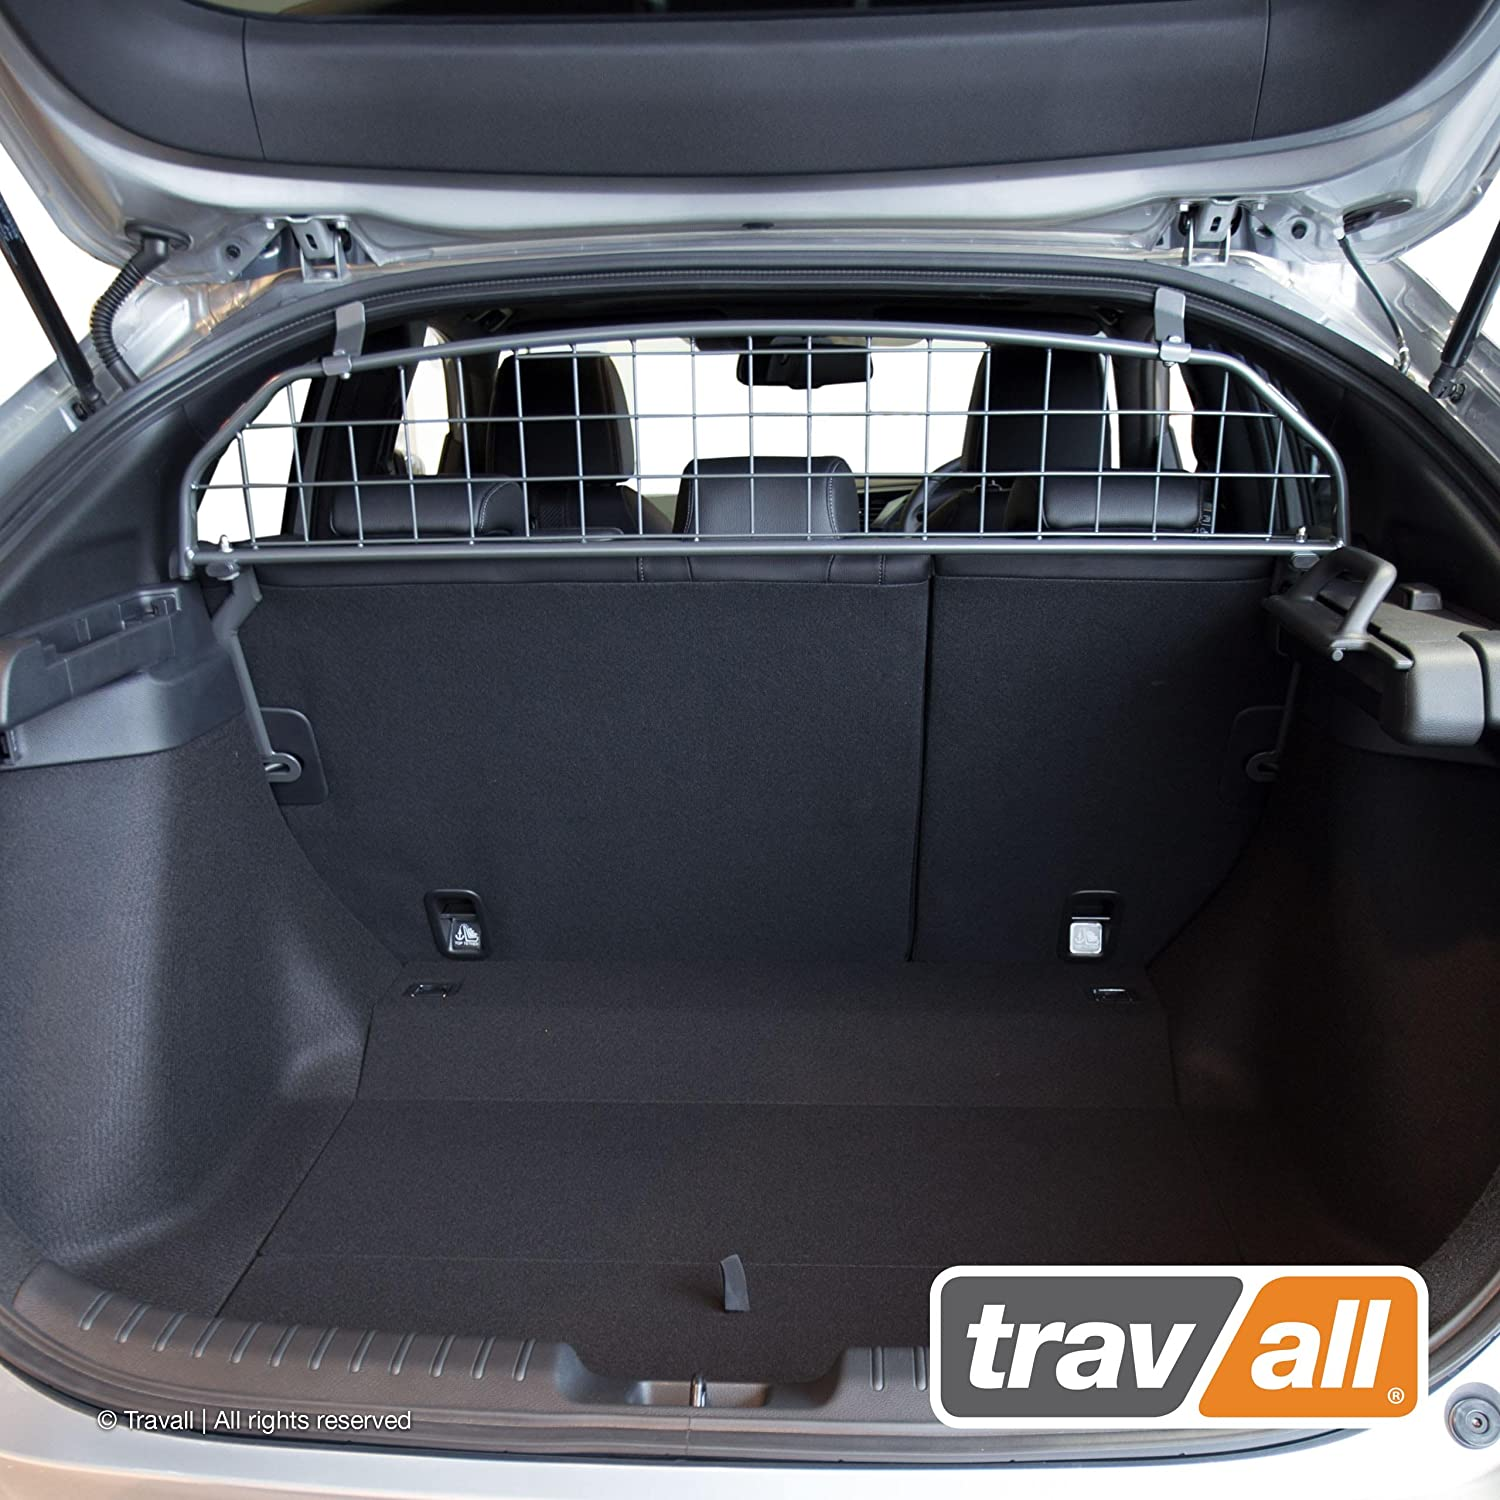 Travall Guard Compatible with Honda Civic 4 Door Hatchback 2015-Current TDG1543 – Rattle-Free Steel Pet Barrier